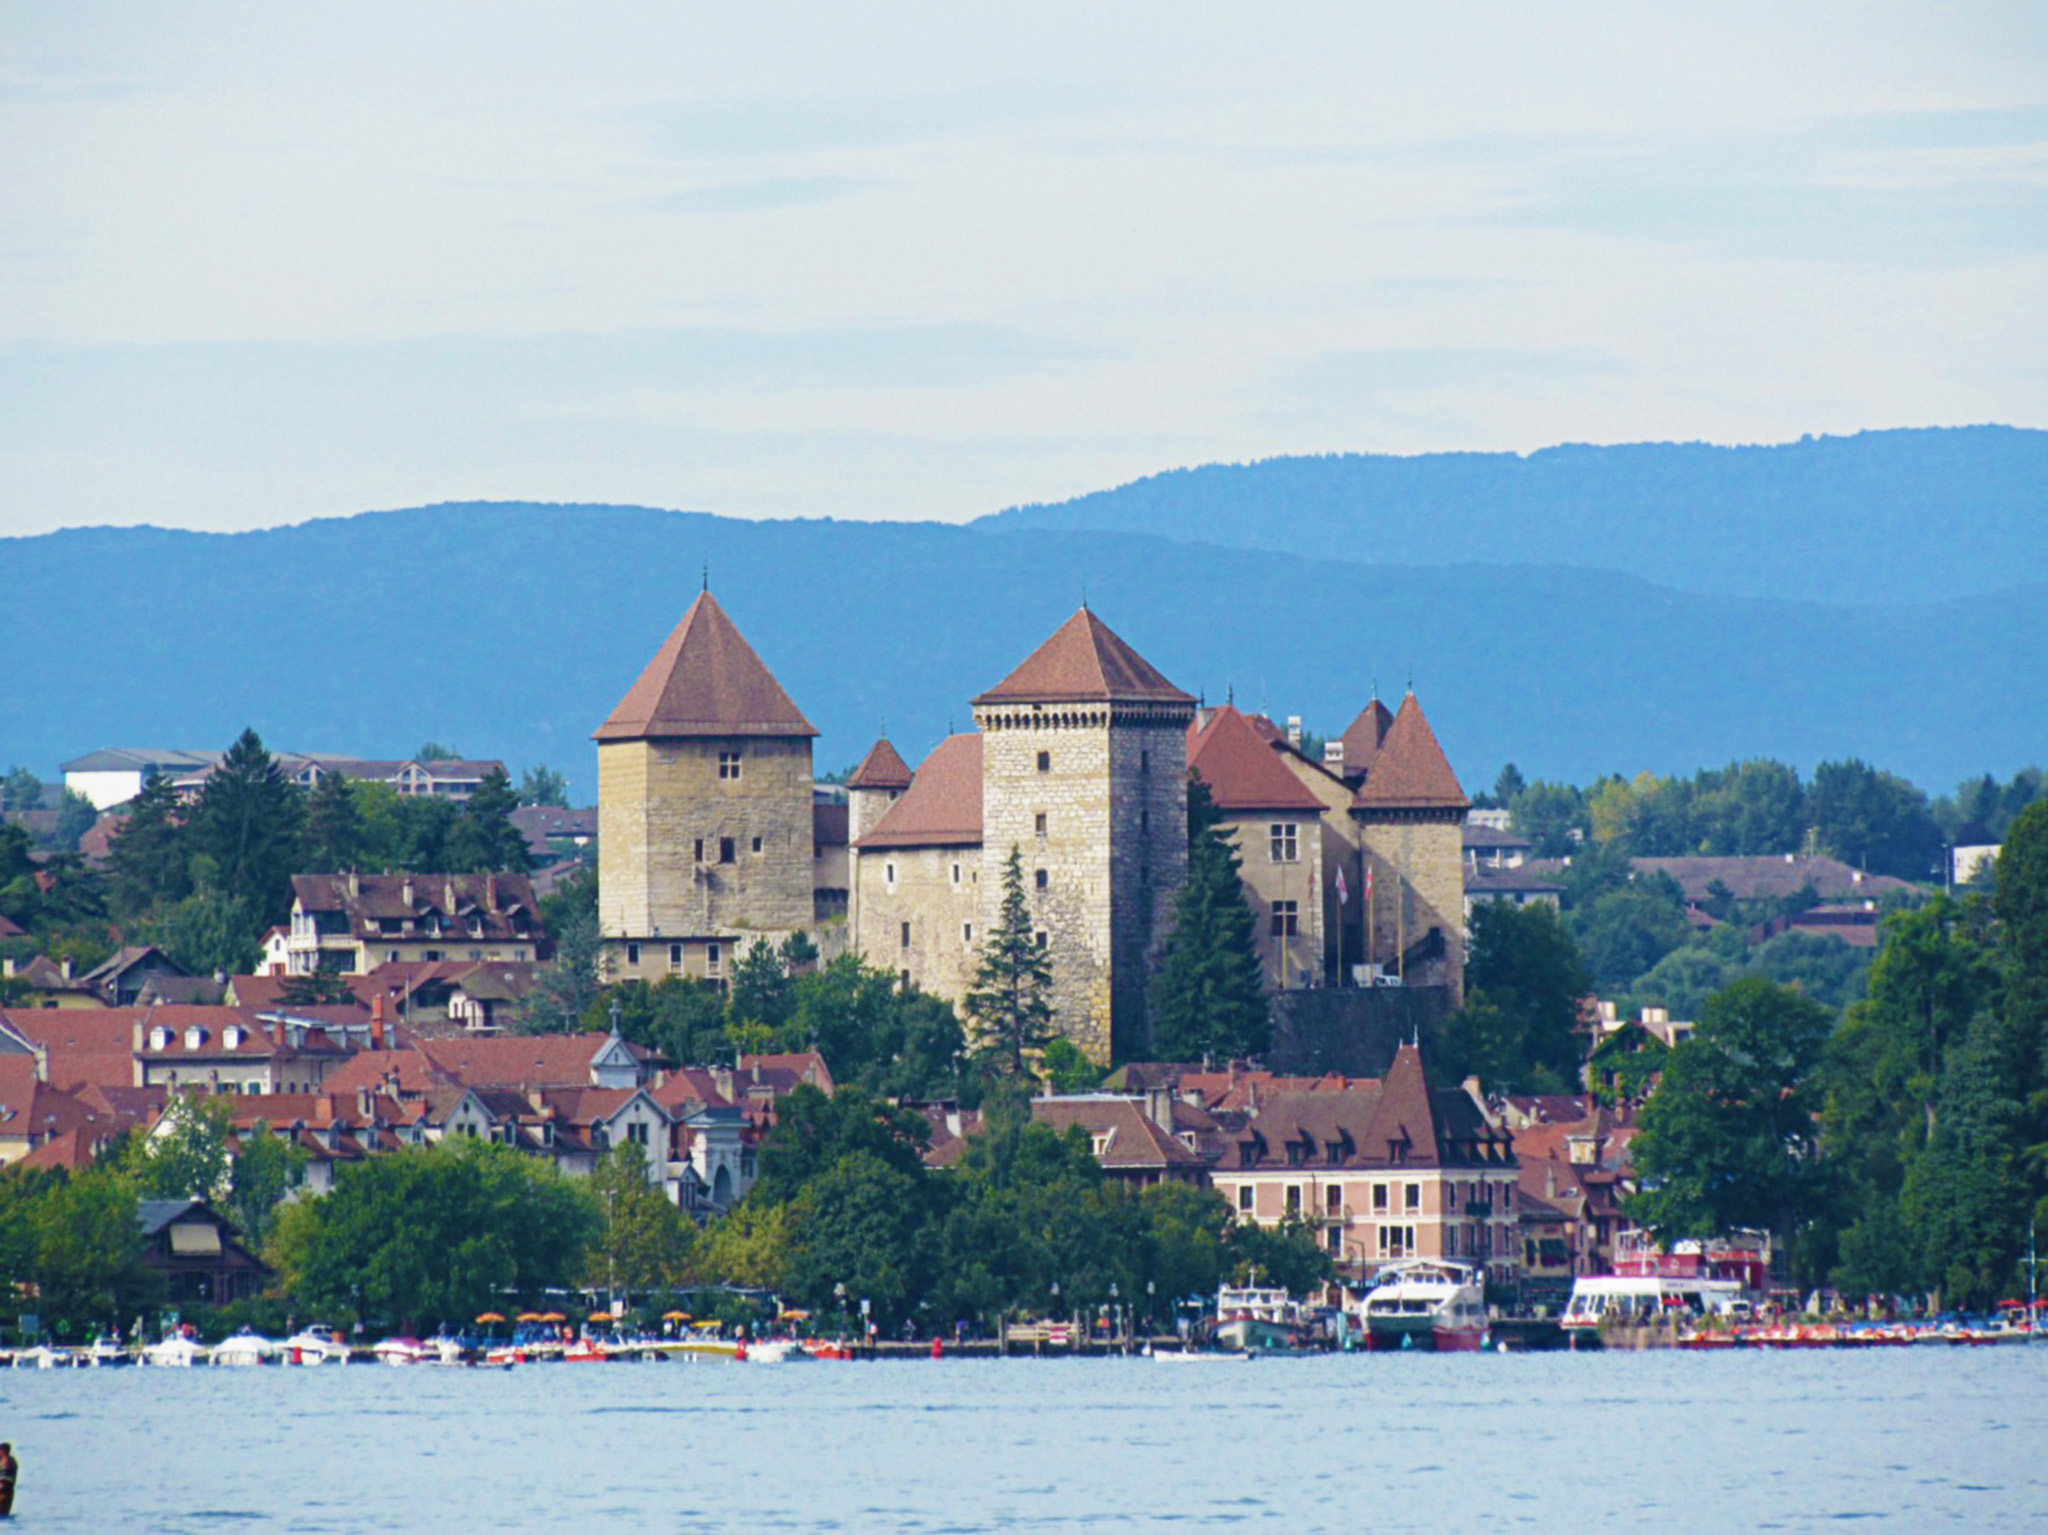 kt_2020_370_Keytours_excursions_Swisstours_annecy_château1_2048_10